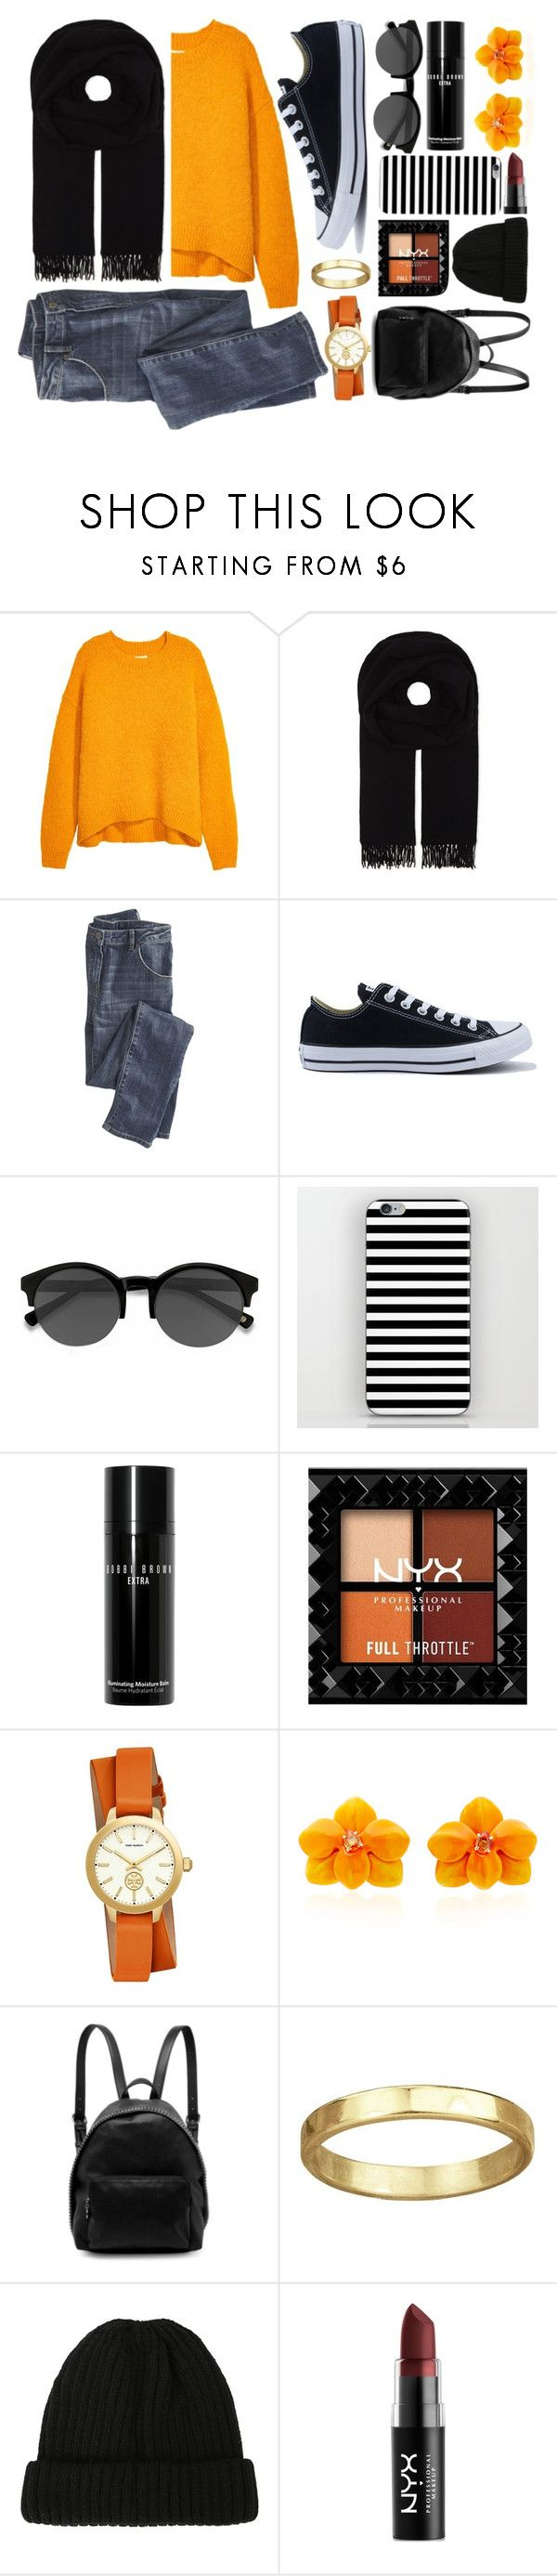 """Fall Sweater"" by bobklug ❤ liked on Polyvore featuring Canada Goose, Wrap, Converse, EyeBuyDirect.com, Bobbi Brown Cosmetics, Tory Burch, Sabbadini, STELLA McCARTNEY, Hot Topic and NYX"